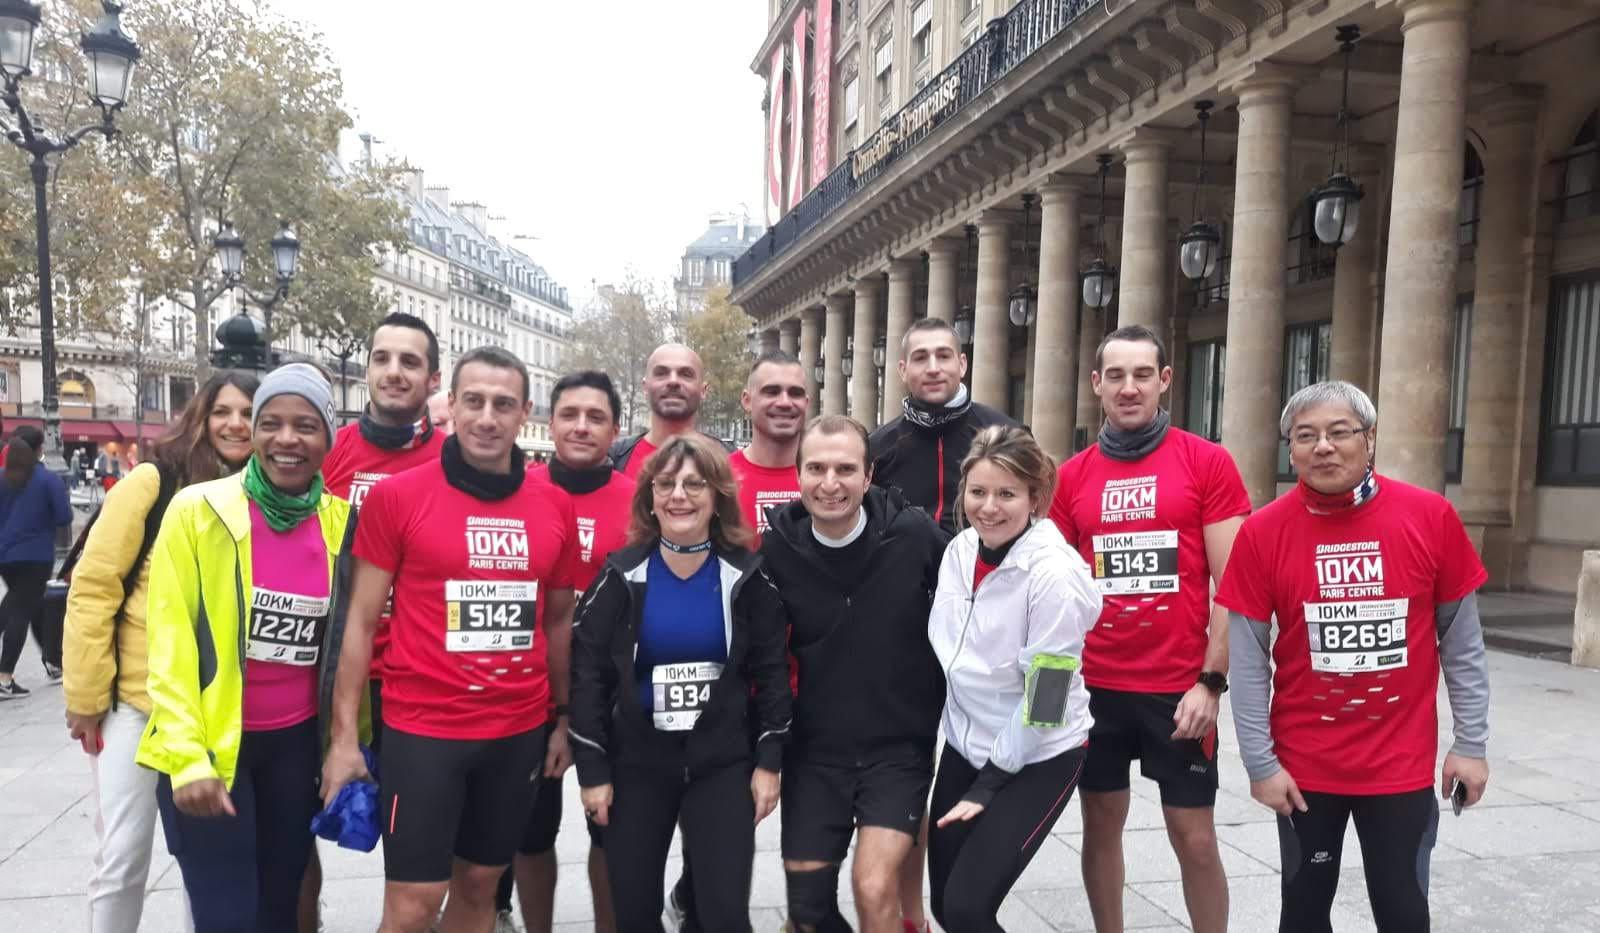 10 KMPARISCENTRE- 24 NOVEMBRE 2019